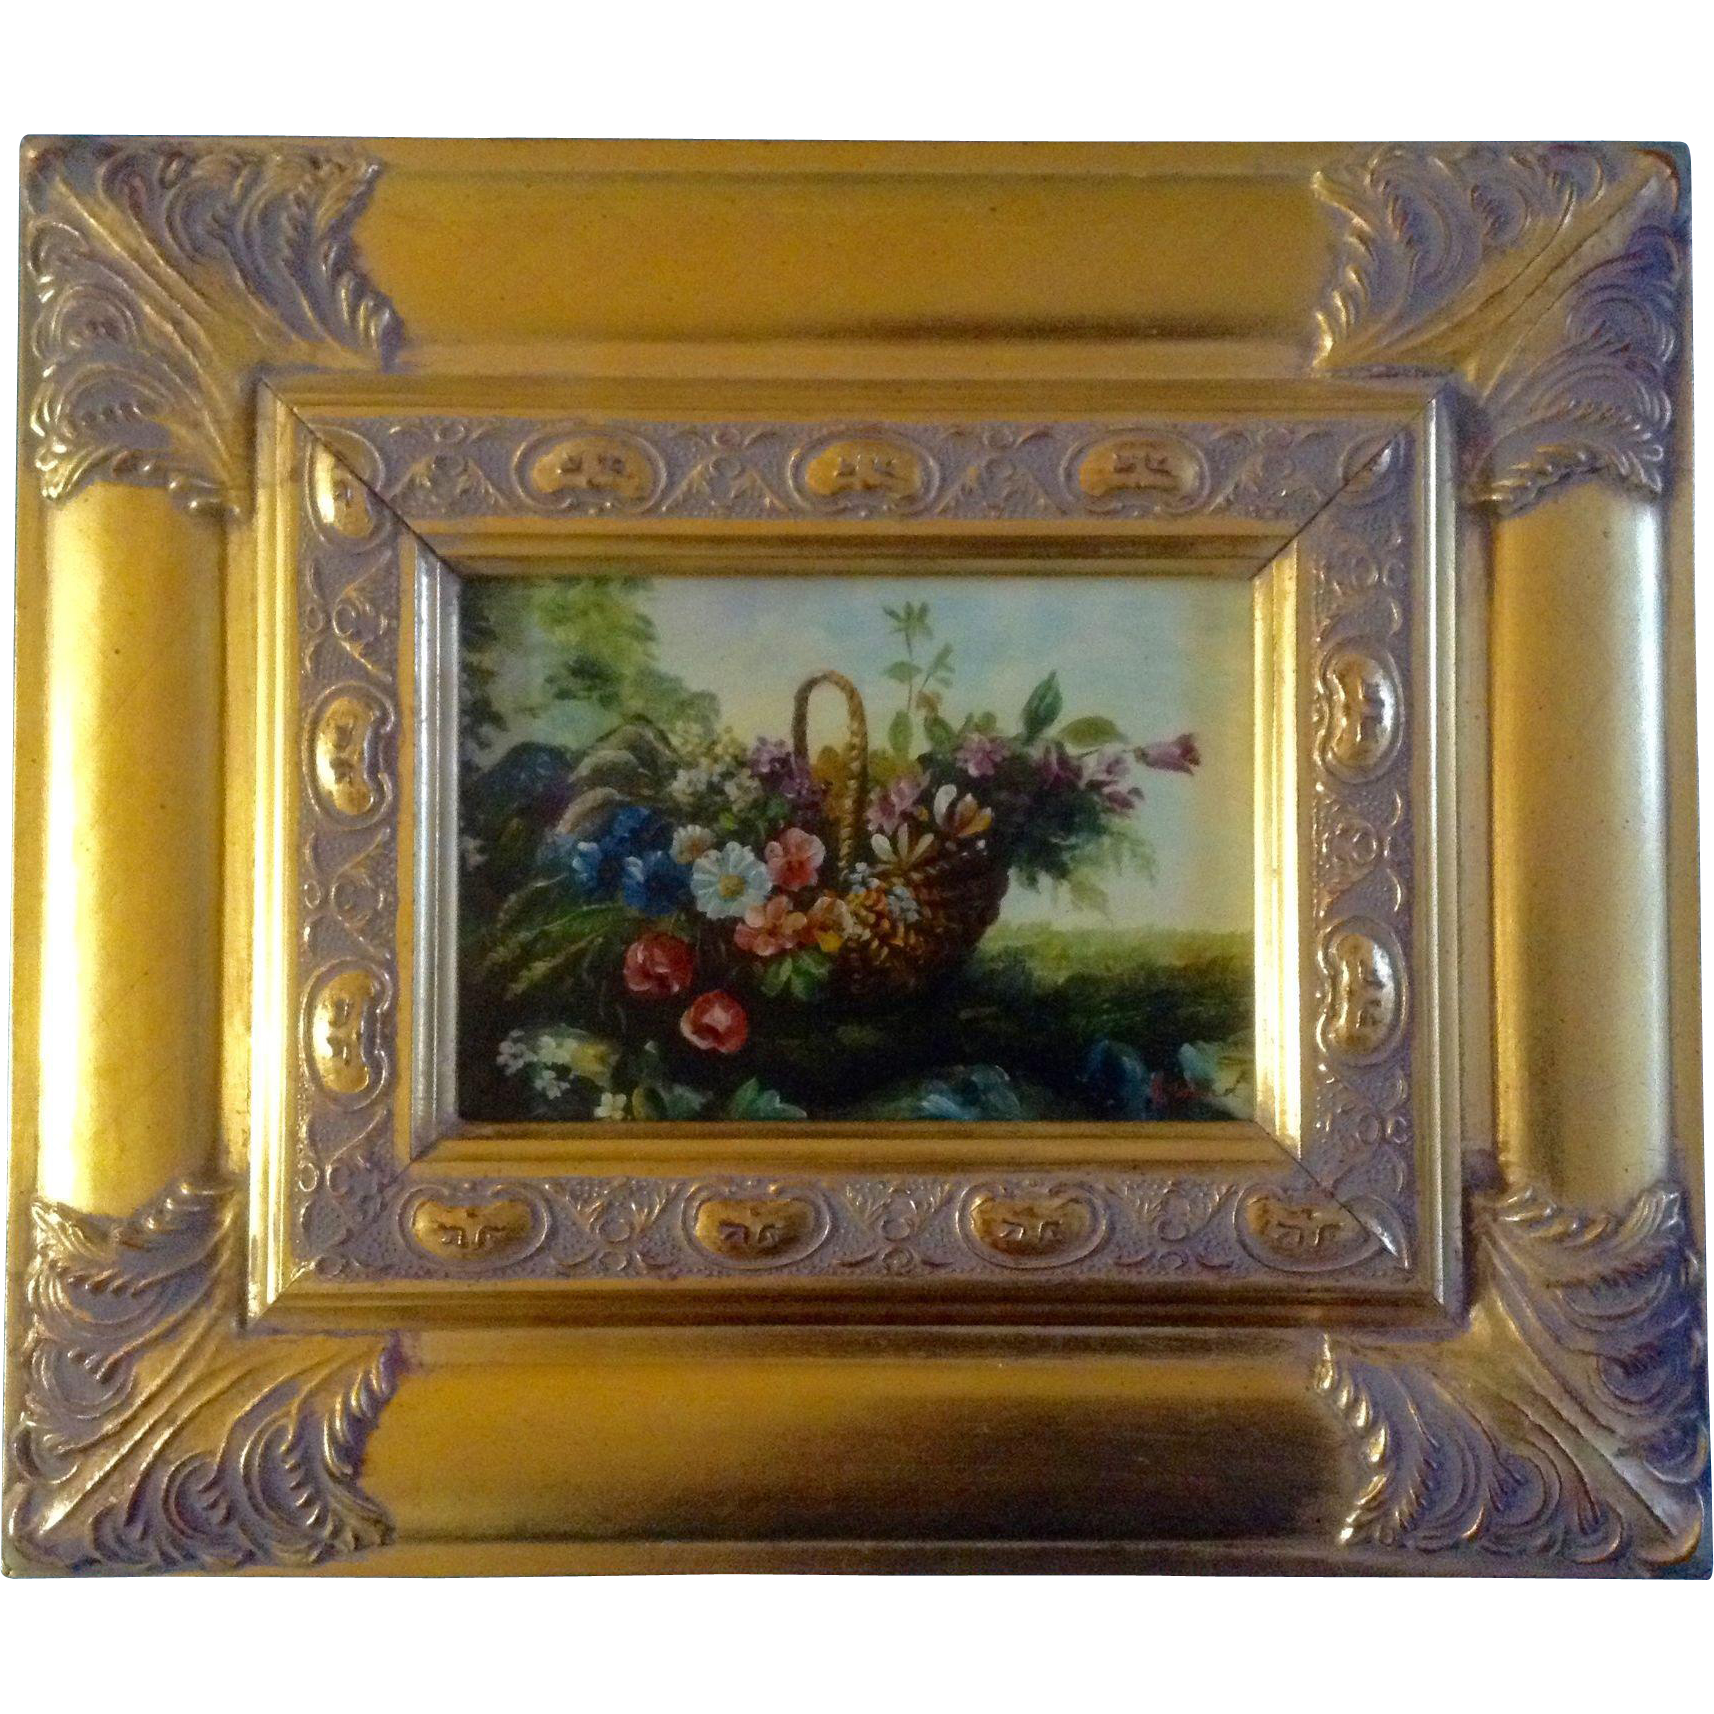 b ward painting wildflowers in a basket bright gold frame signed by artist contemporary oil on board